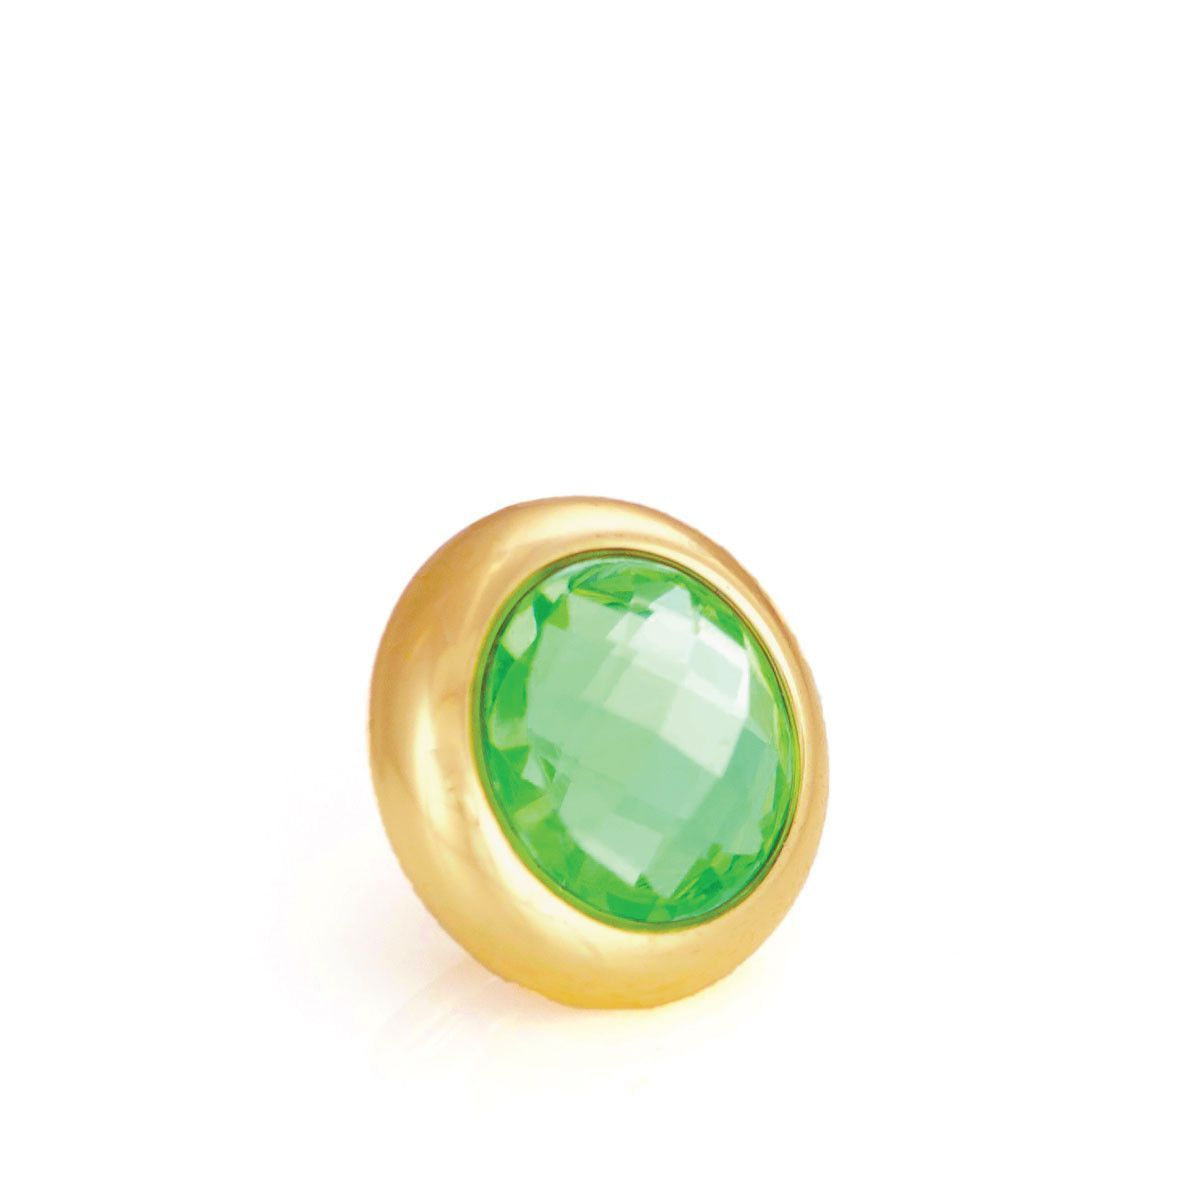 ROLL IN THE GRASS Crystal, Small Gold-Plated Stud